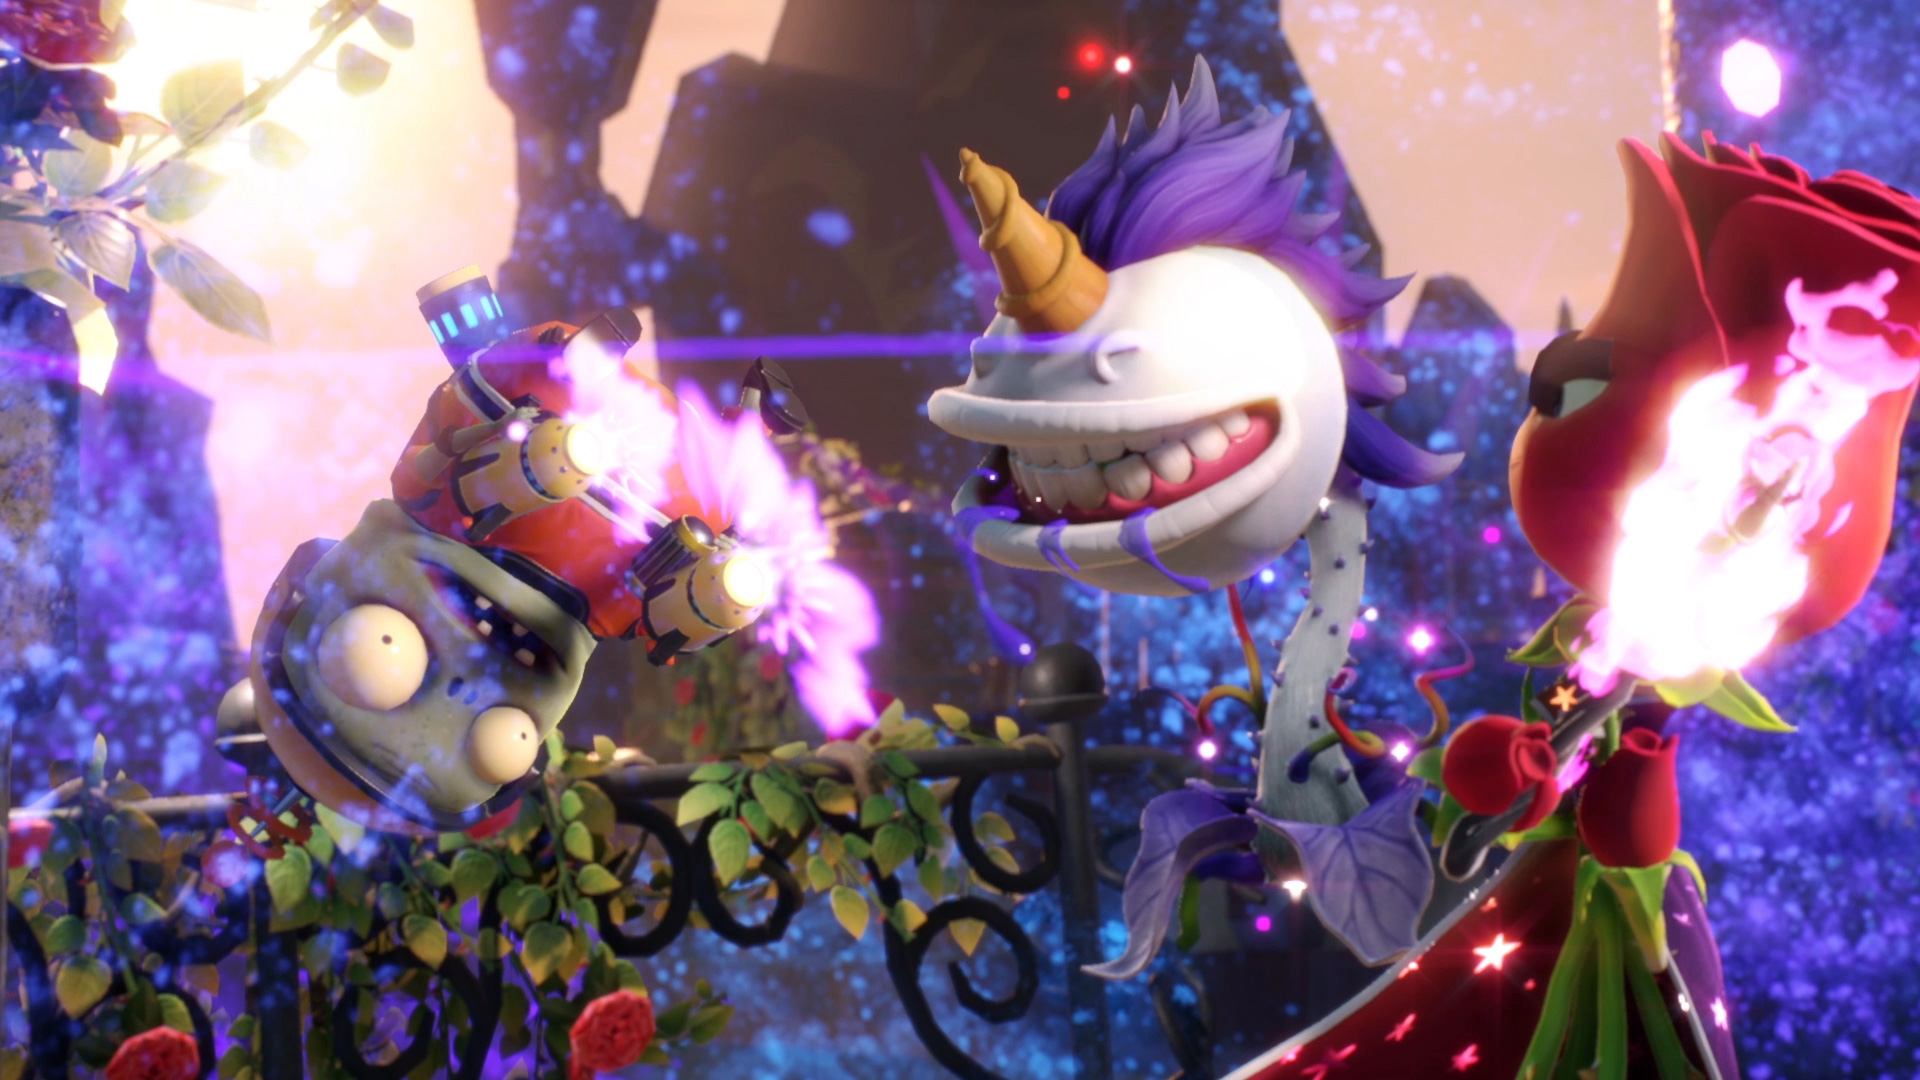 Plants Vs. Zombies Has Always Been Known For Its Amazing Characters, And Plants  Vs. Zombies Garden Warfare 2 Comes With The Baddest Characters Yet.